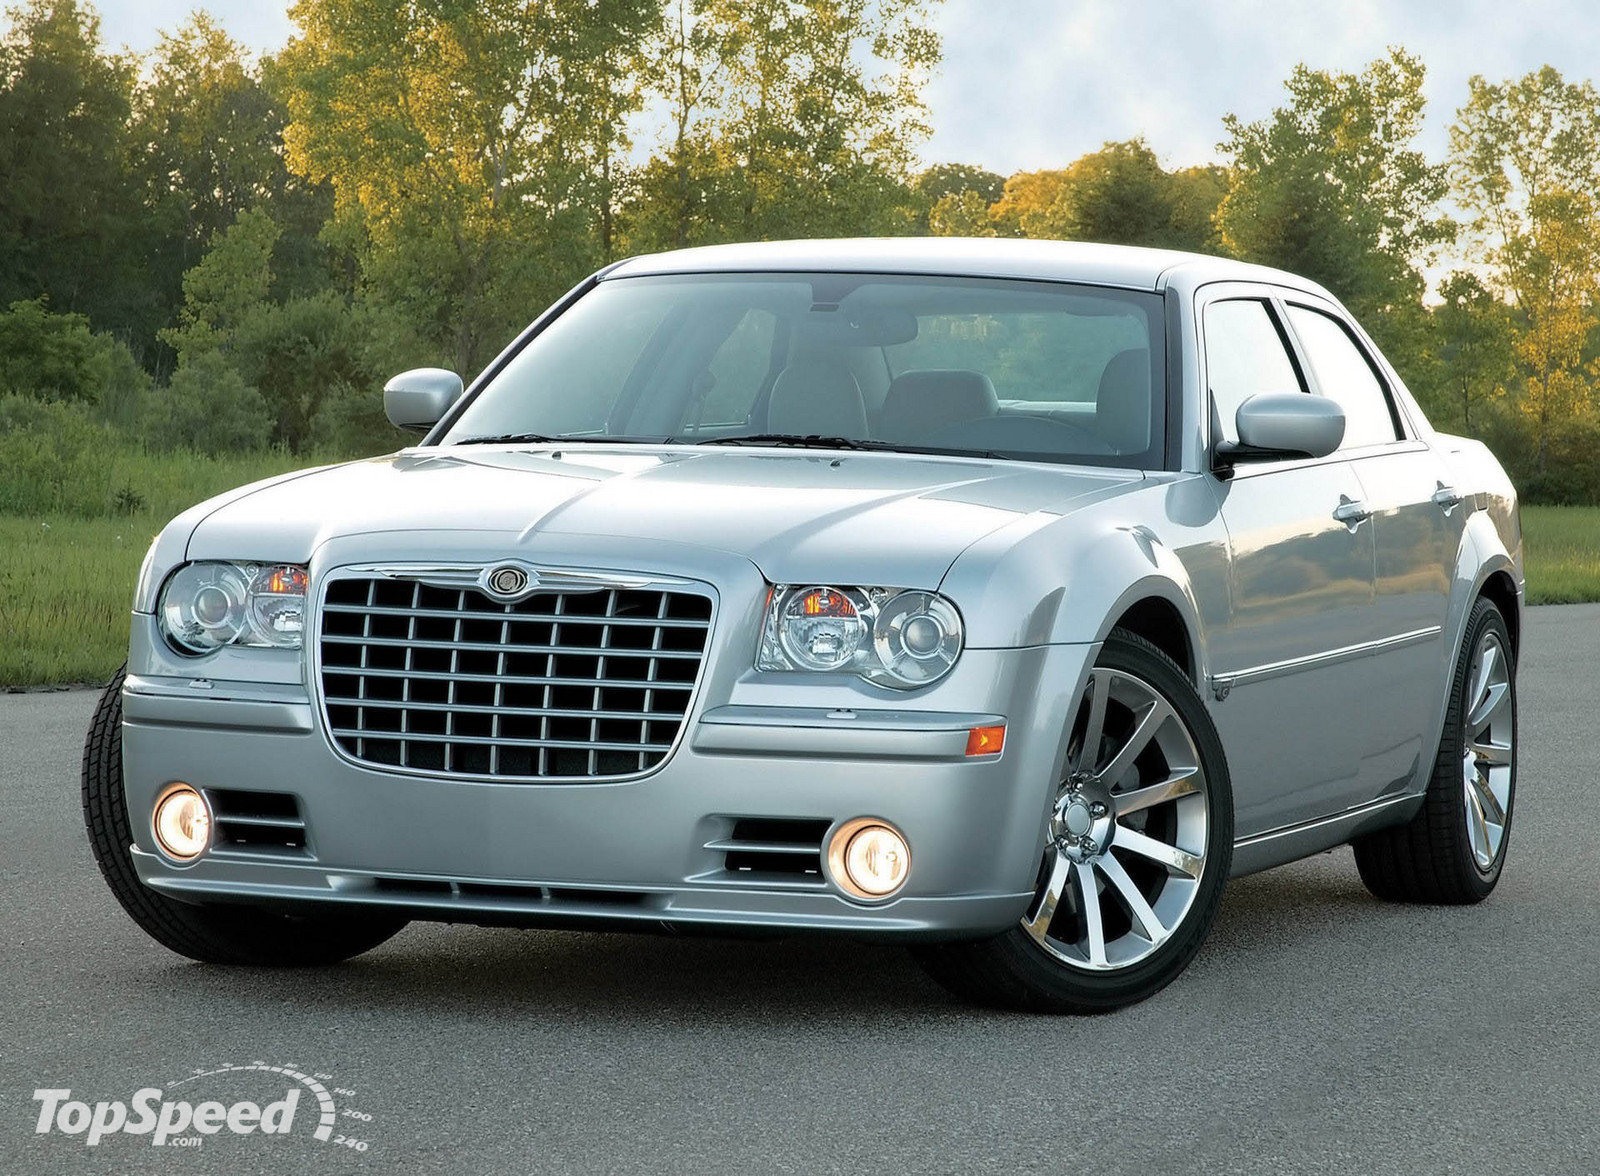 2005 Chrysler 300 #7